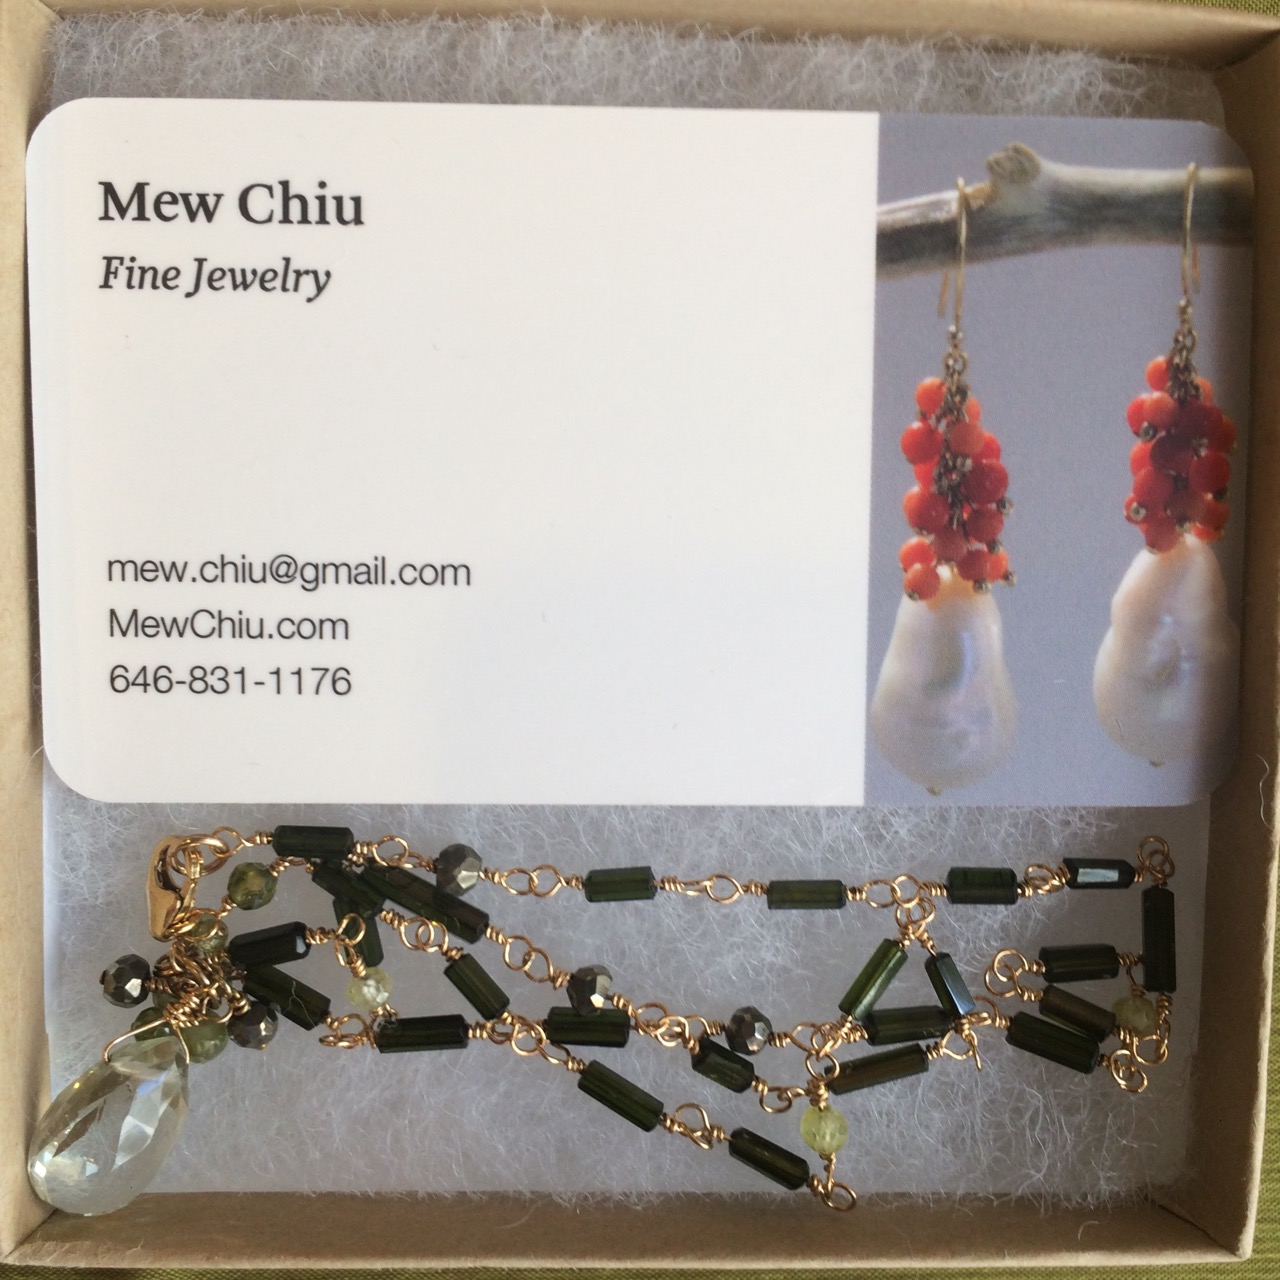 Auction Item 5: Gold-filled wire wrapped necklace with tourmaline, pyrite, green quartz and cubic zirconia beads.  Value: $150.--  Jeweler:  Mew Chiu Fine Jewelry